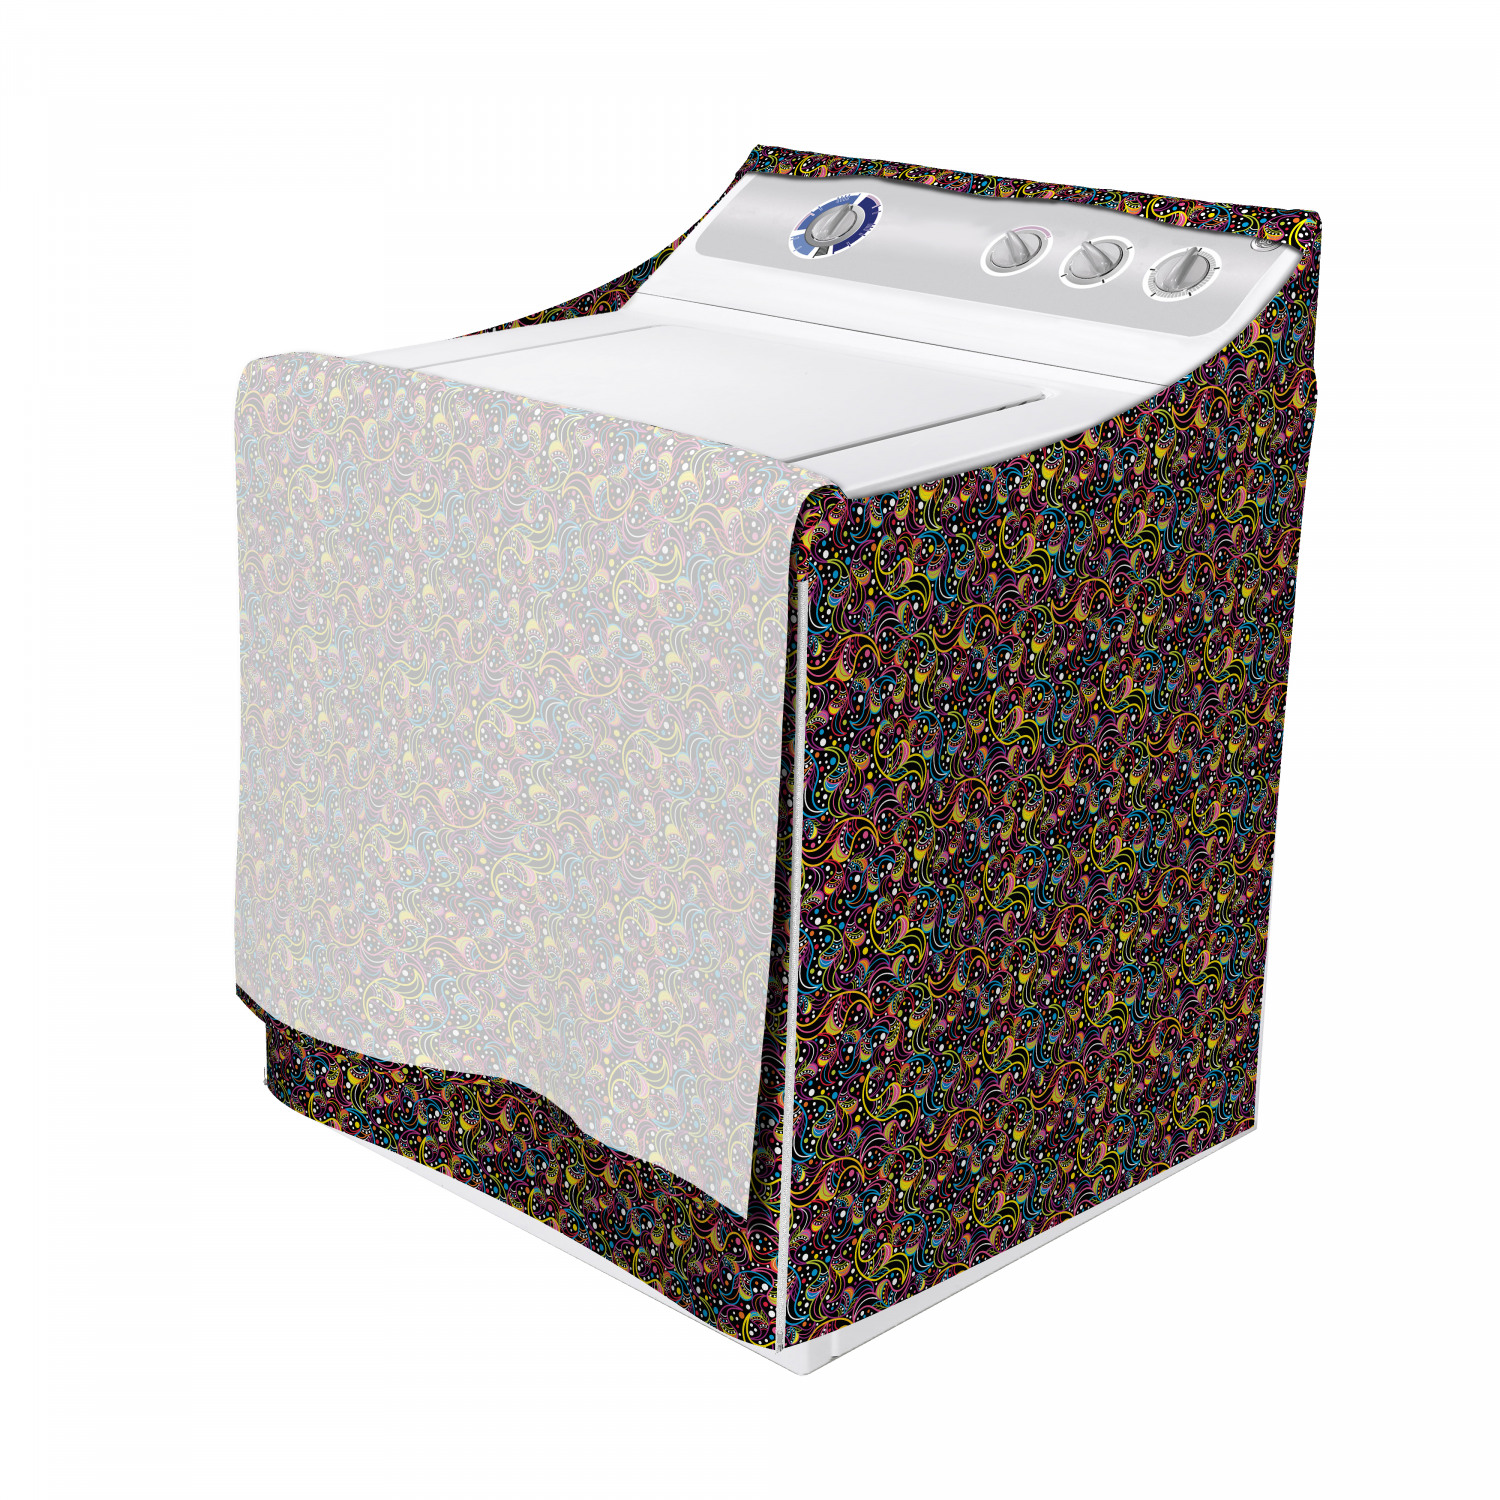 Ambesonne Abstract Motif Washing Machine Cover Laundromat Decorative Accent Ebay